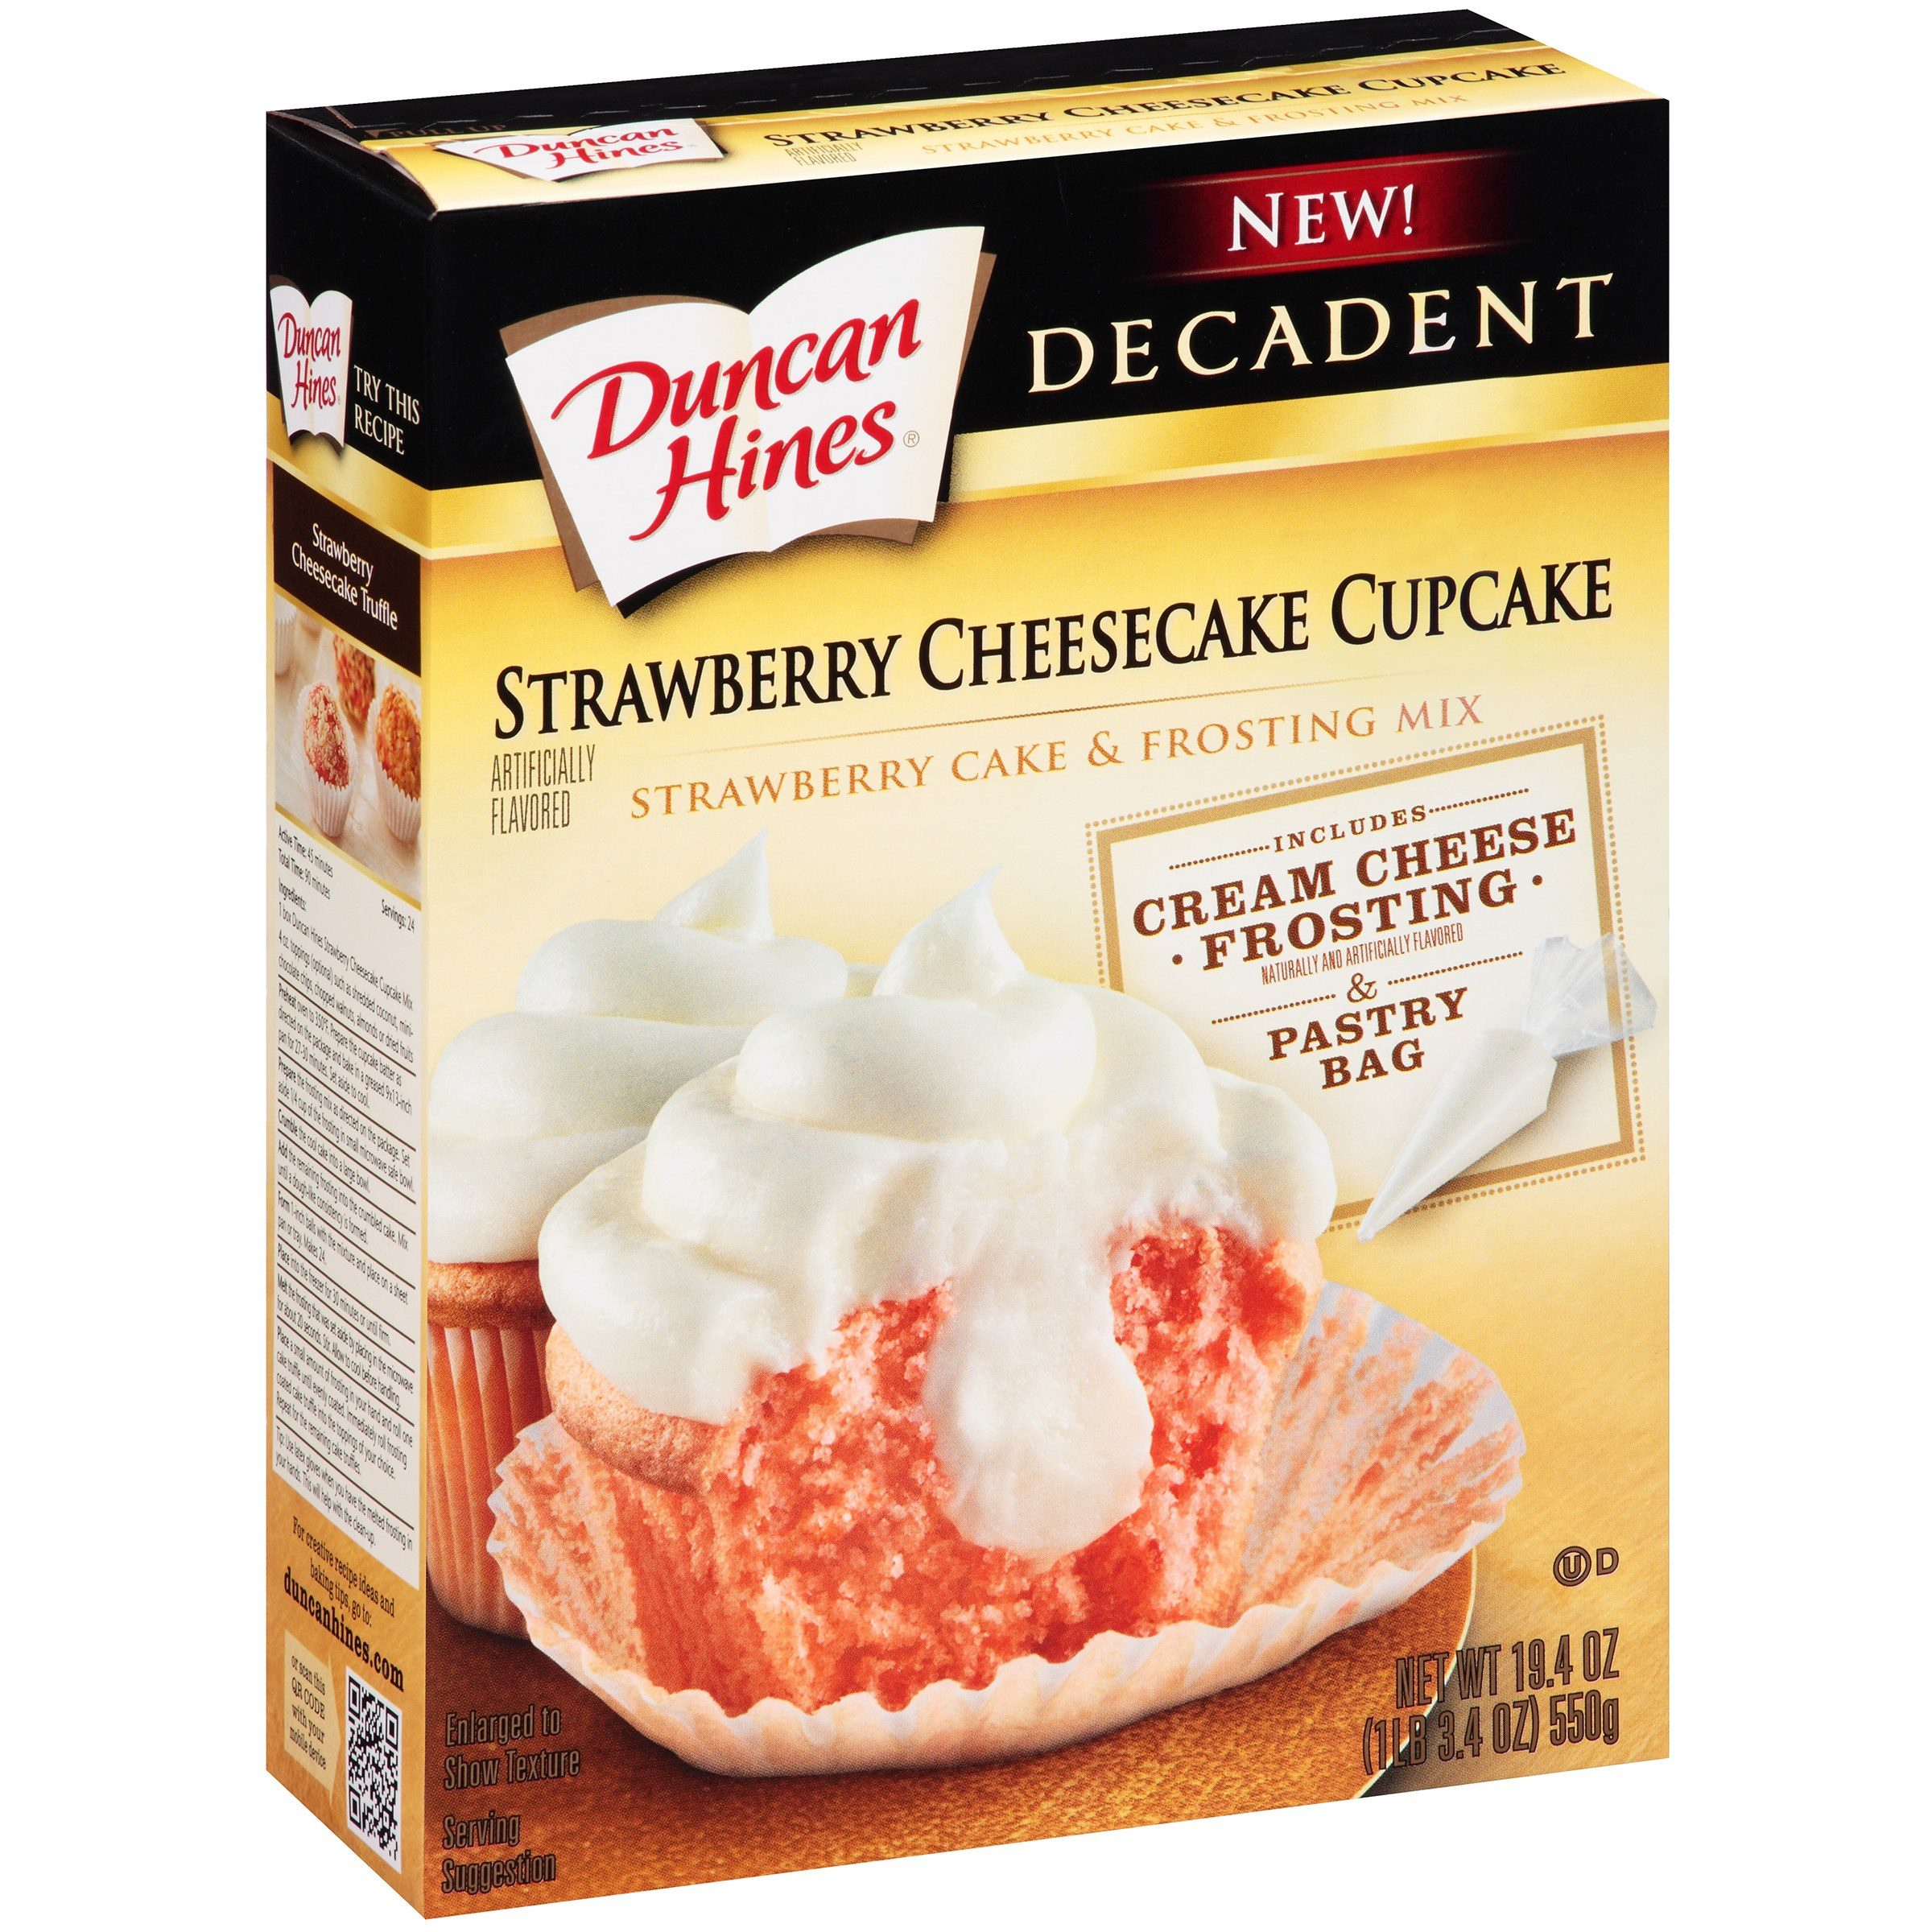 Duncan Hines® Decadent Strawberry Cheesecake Cupcake & Frosting Mix 19.4 oz. Box